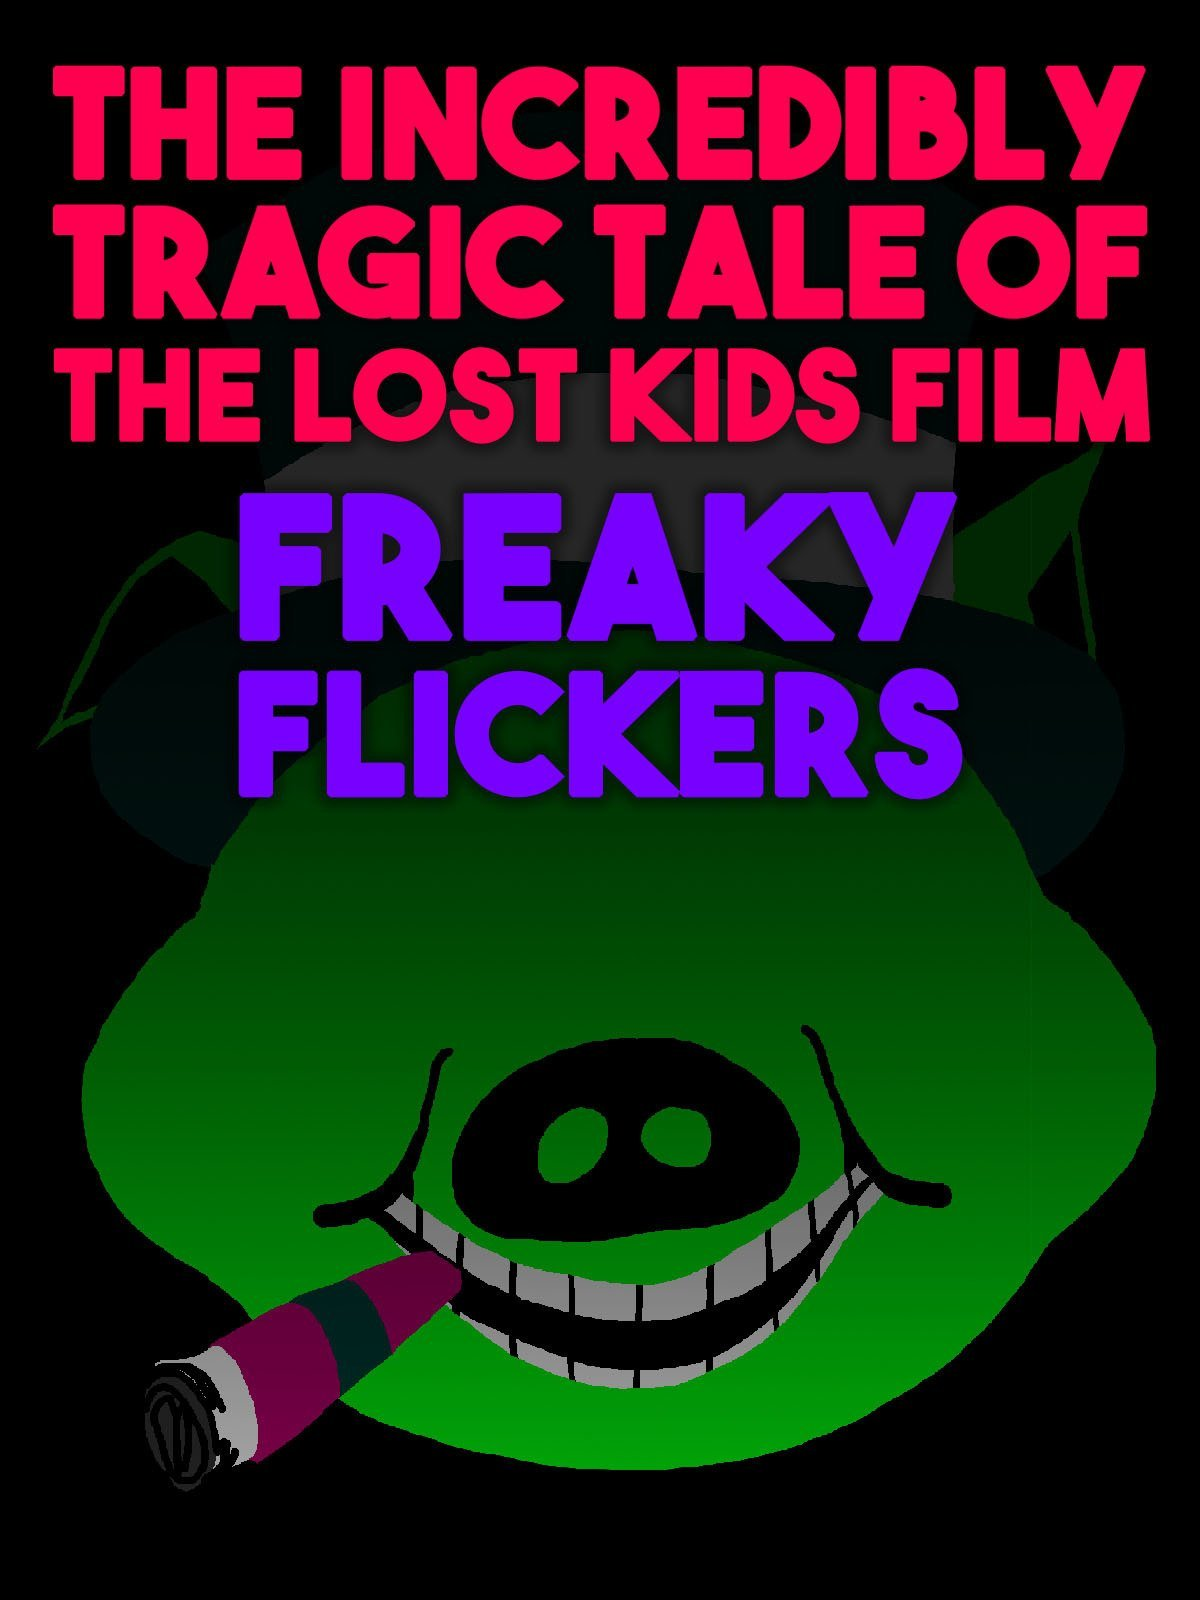 The incredibly tragic tale of the lost kids film, Freaky Flickers.